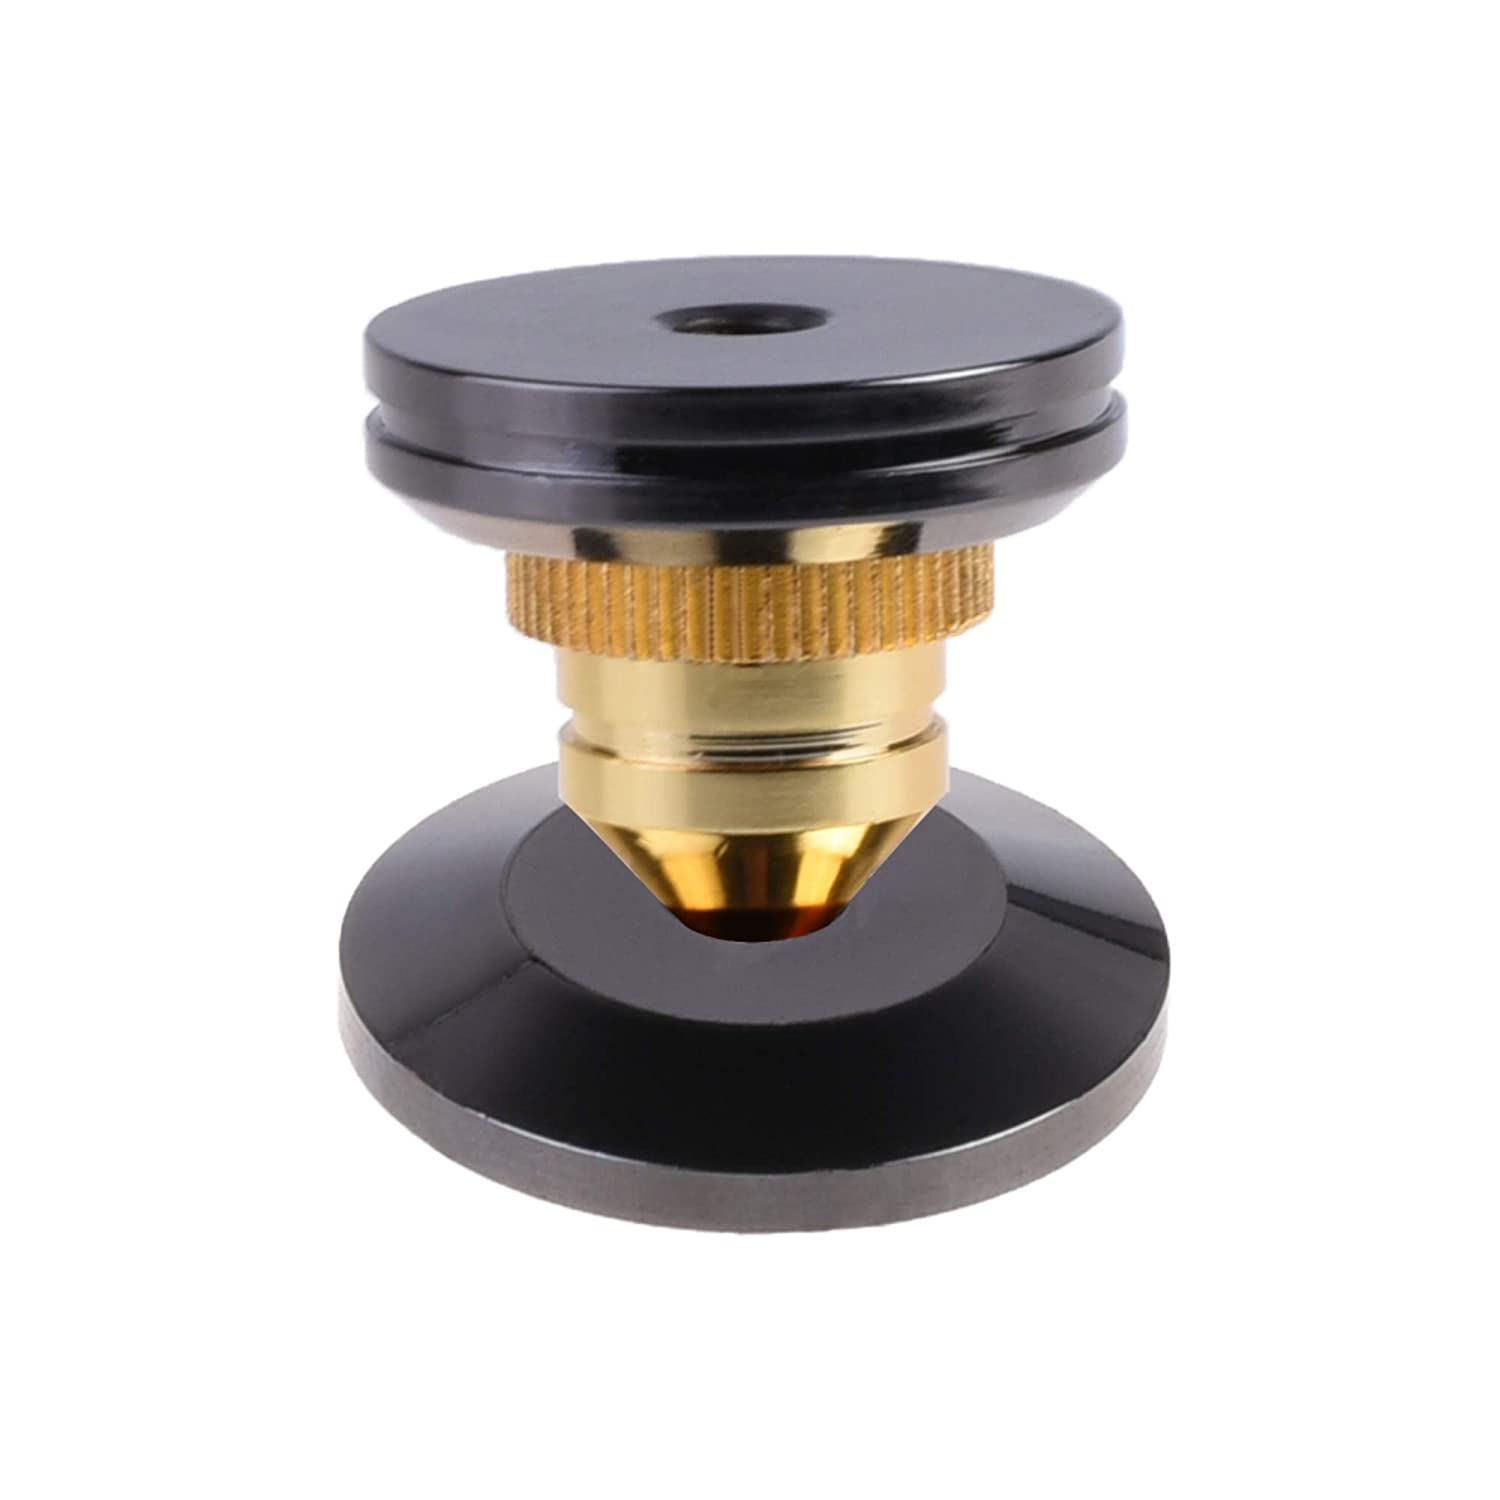 Bluecell Pack of 8 Black 24K Nickel Plated Speaker Spikes Pads Mats 5x25mm Isolation Stand Foot Cone Base